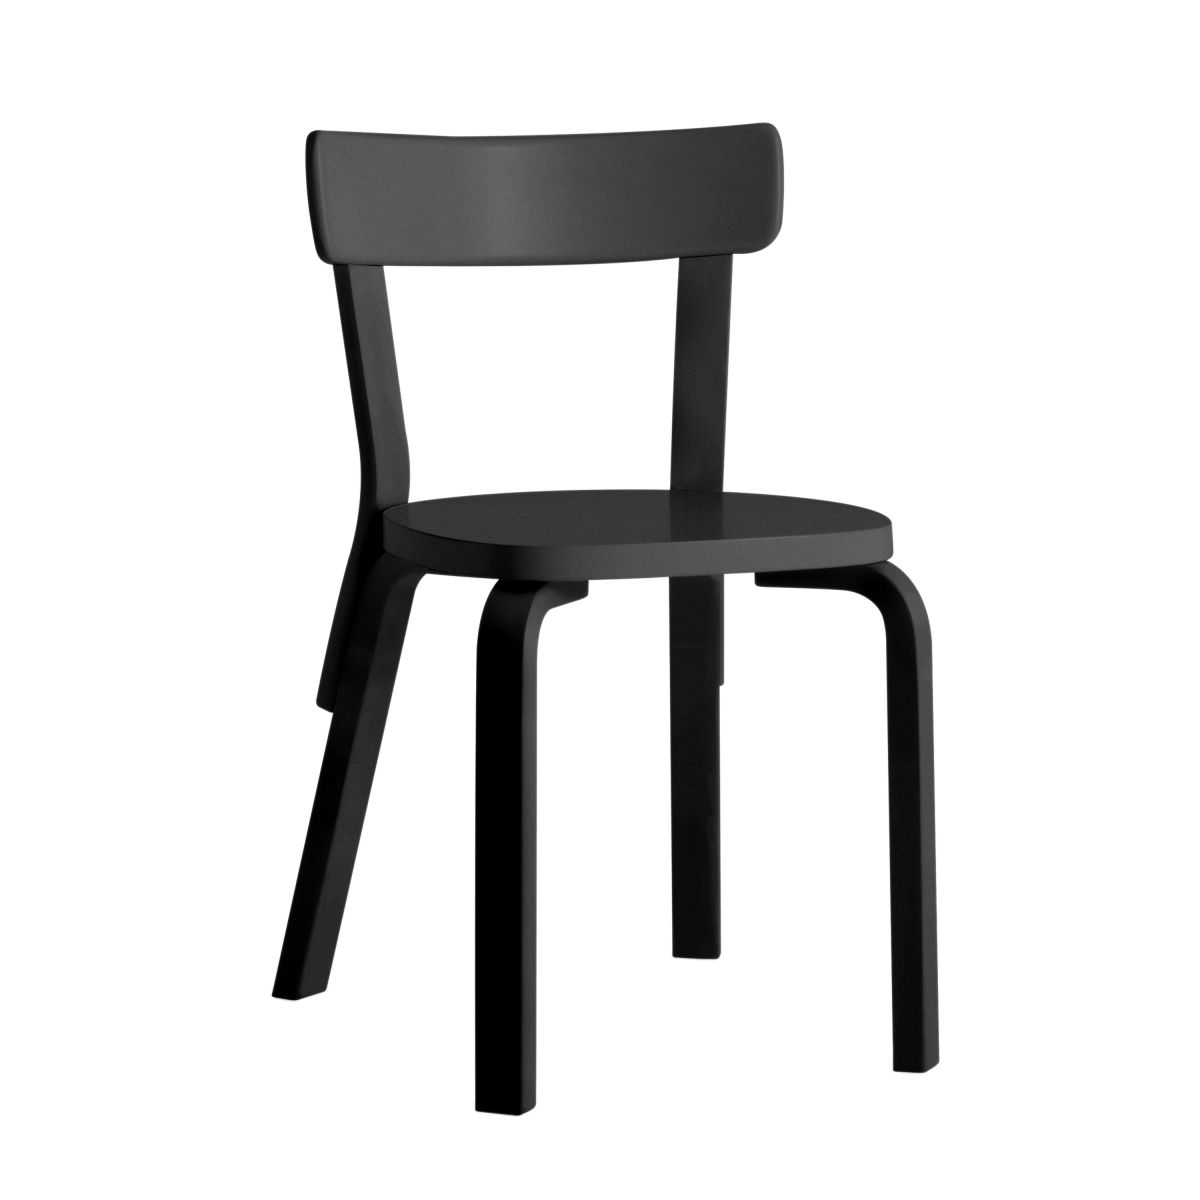 Chair-69-Black-Lacquer_2